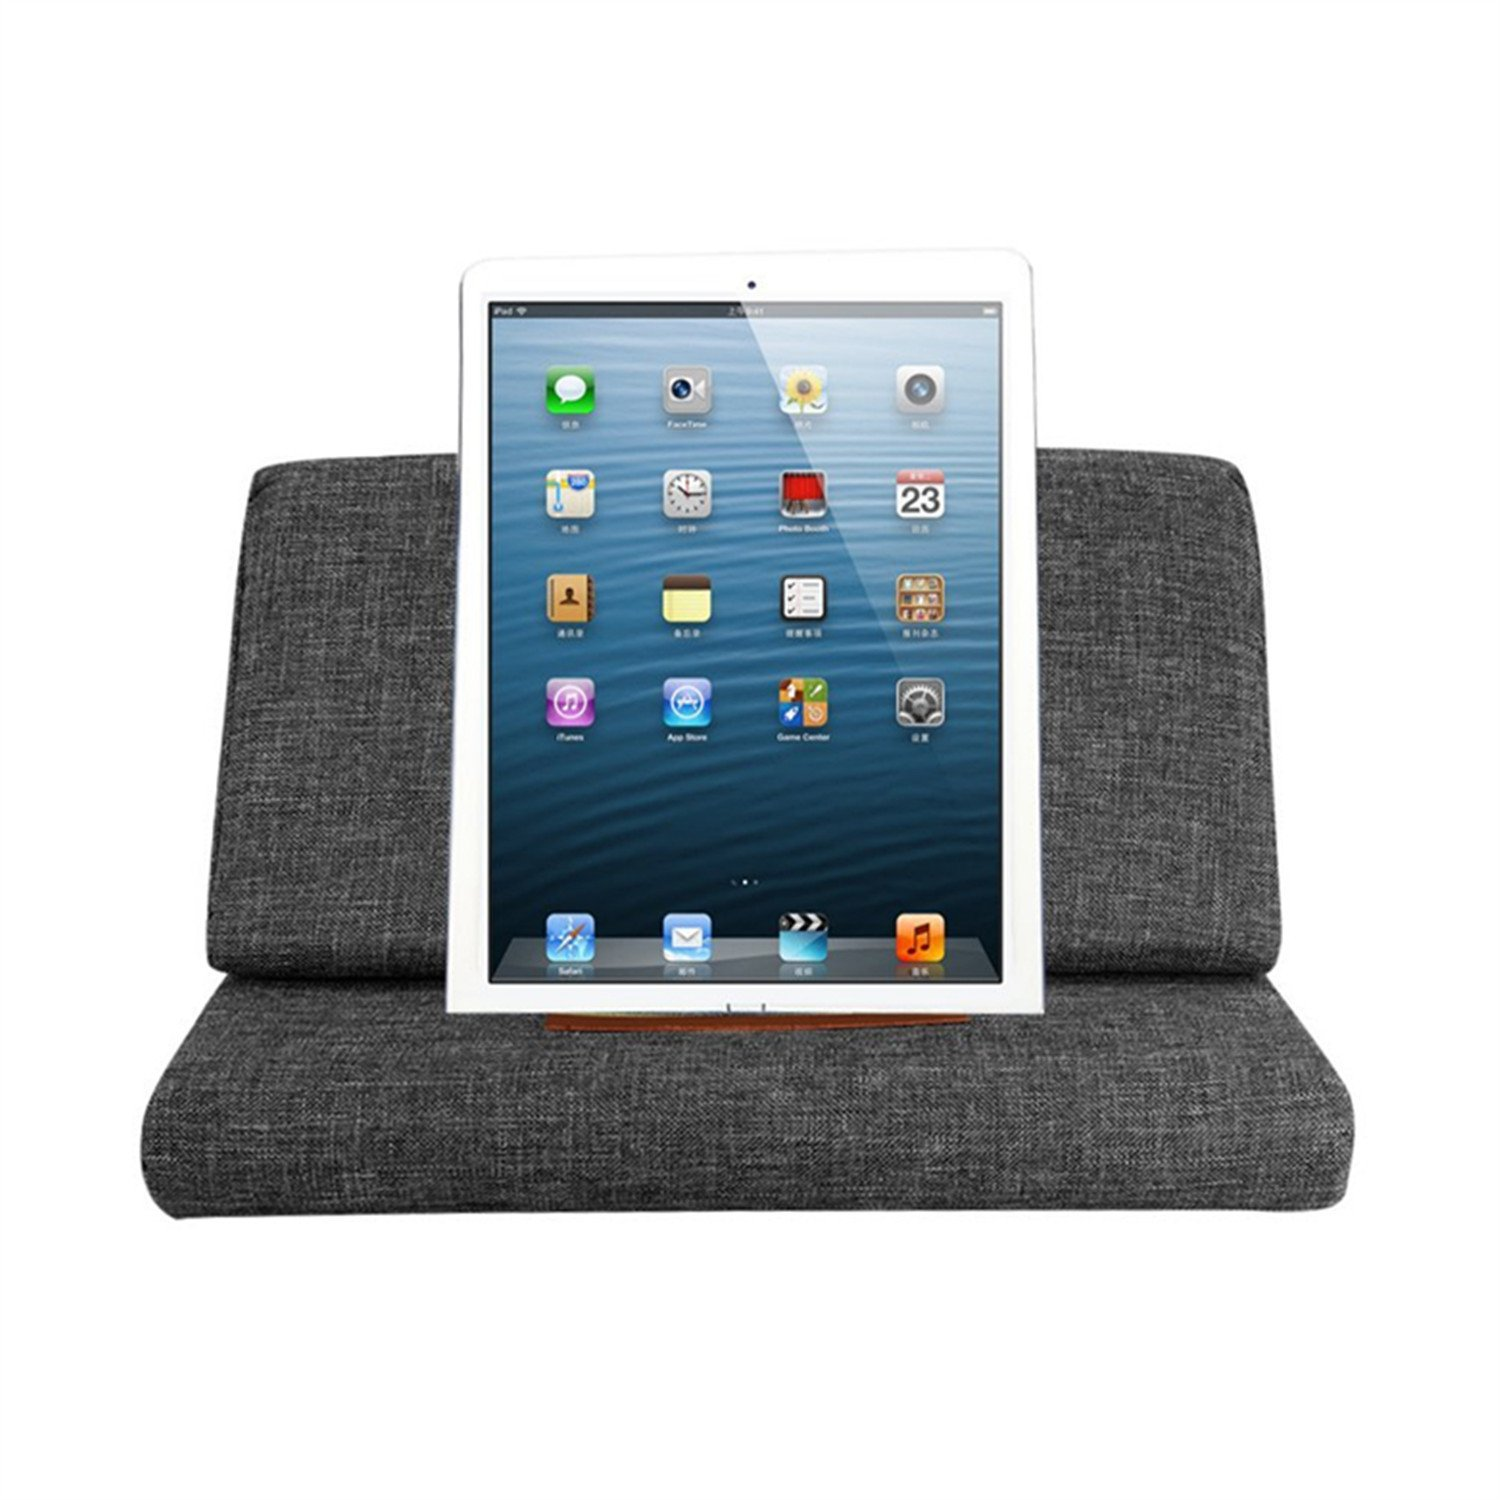 vipe tablet pillow for ipad reading pillow mini tablet ipad holder sofa reading stand ipad. Black Bedroom Furniture Sets. Home Design Ideas